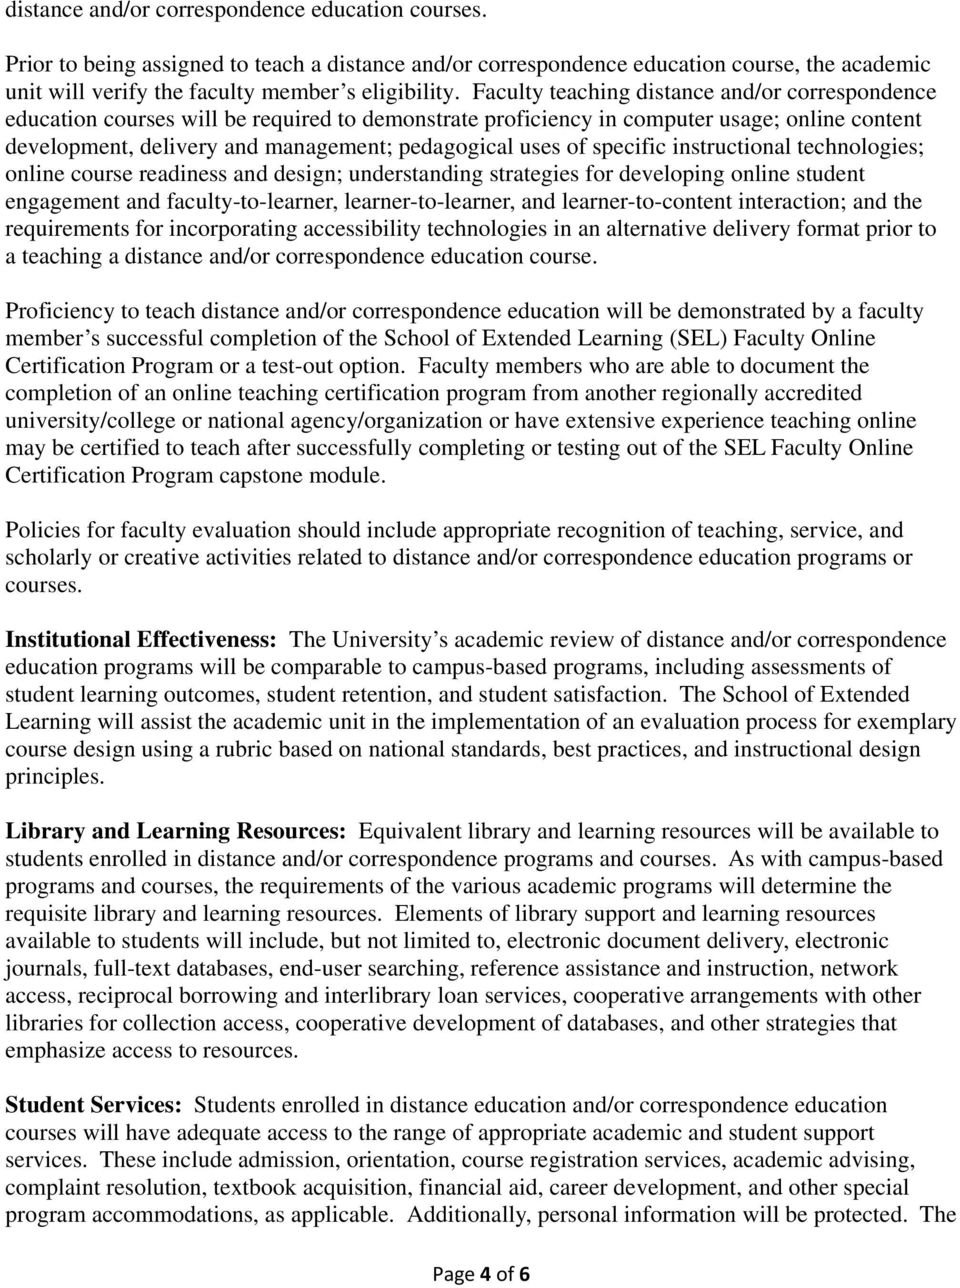 of specific instructional technologies; online course readiness and design; understanding strategies for developing online student engagement and faculty-to-learner, learner-to-learner, and